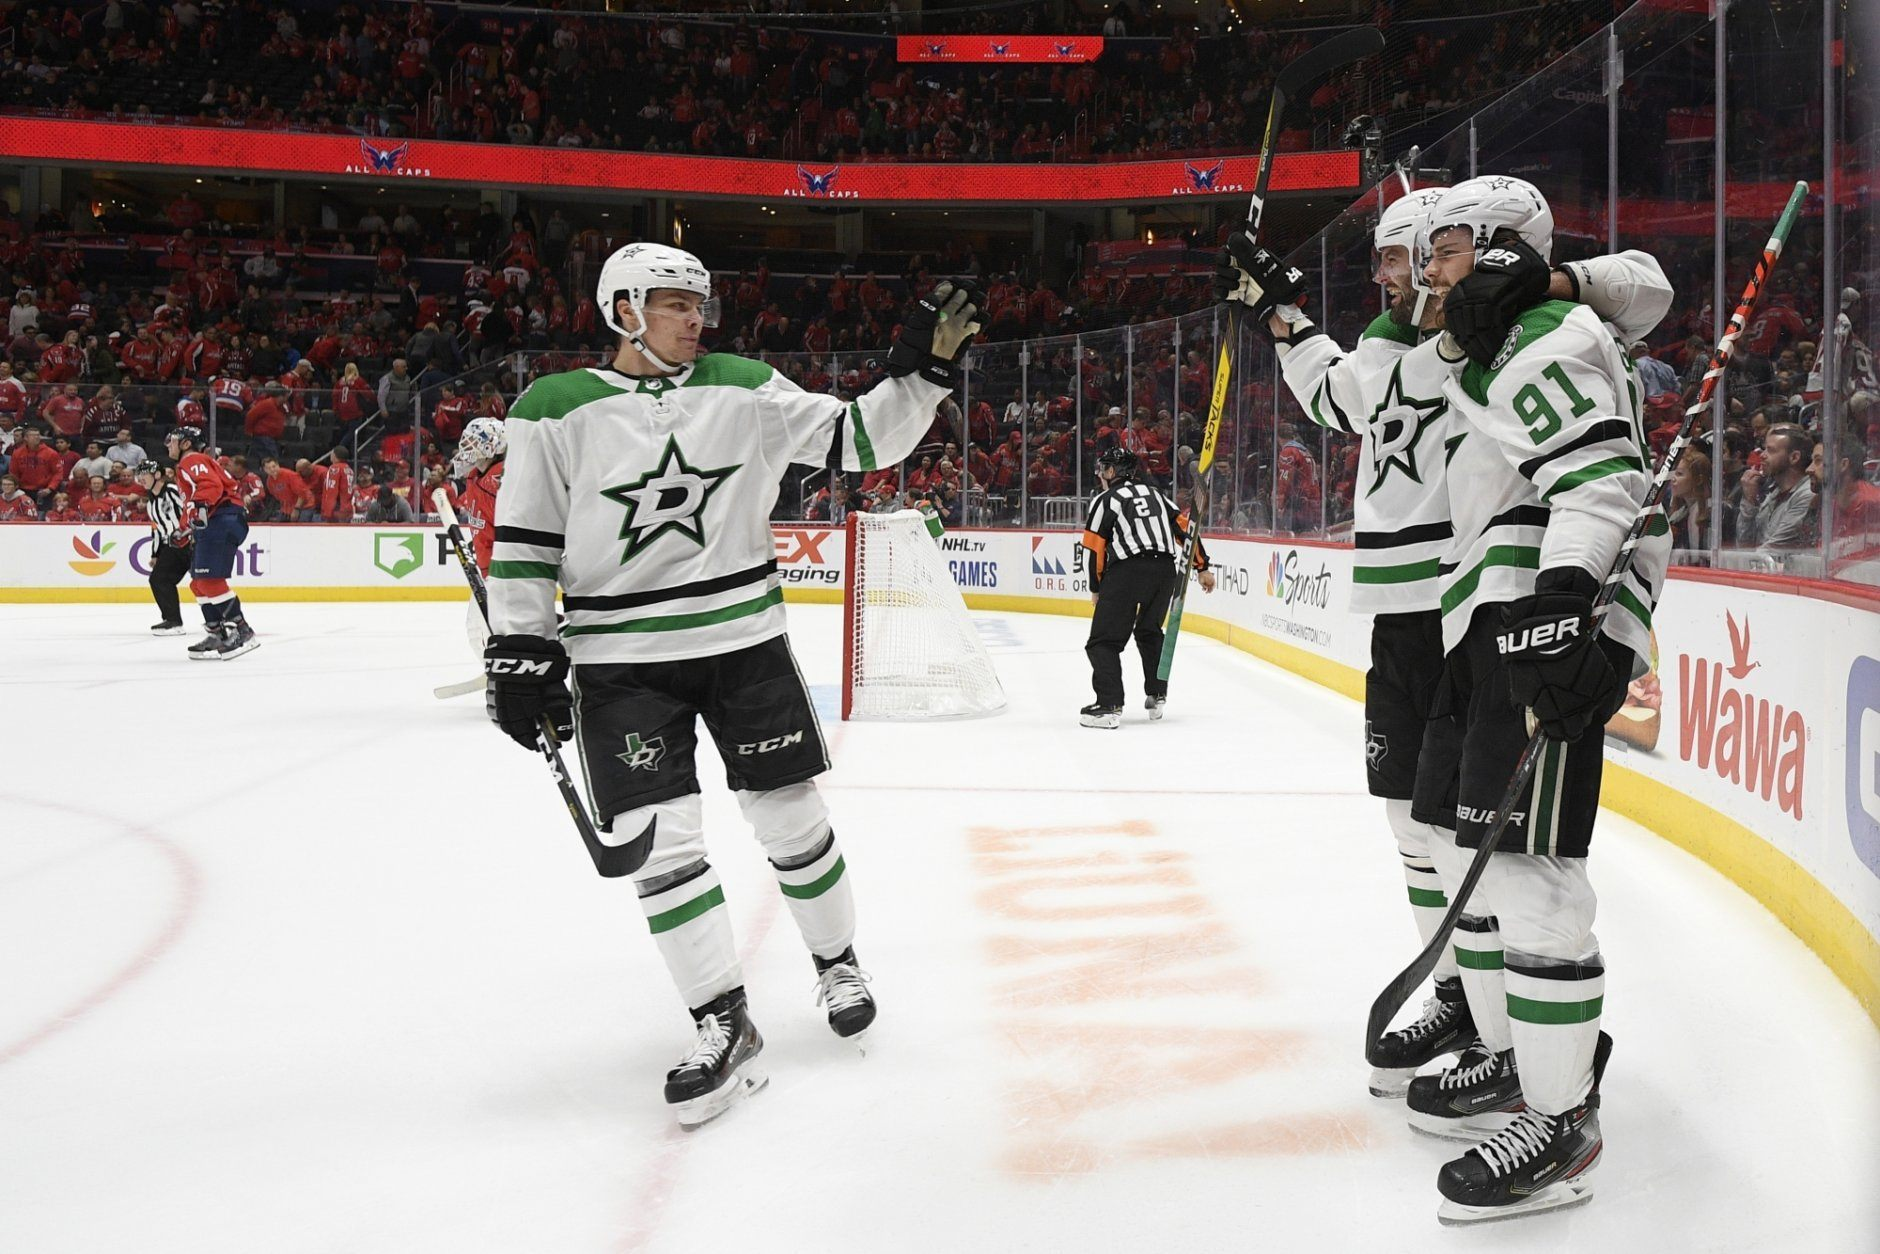 Dallas Stars center Tyler Seguin (91) celebrates his goal with Alexander Radulov, center, of Russia, and Miro Heiskanen, left, of Finland, in overtime of the team's NHL hockey game against the Washington Capitals, Tuesday, Oct. 8, 2019, in Washington. The Stars won 4-3. (AP Photo/Nick Wass)